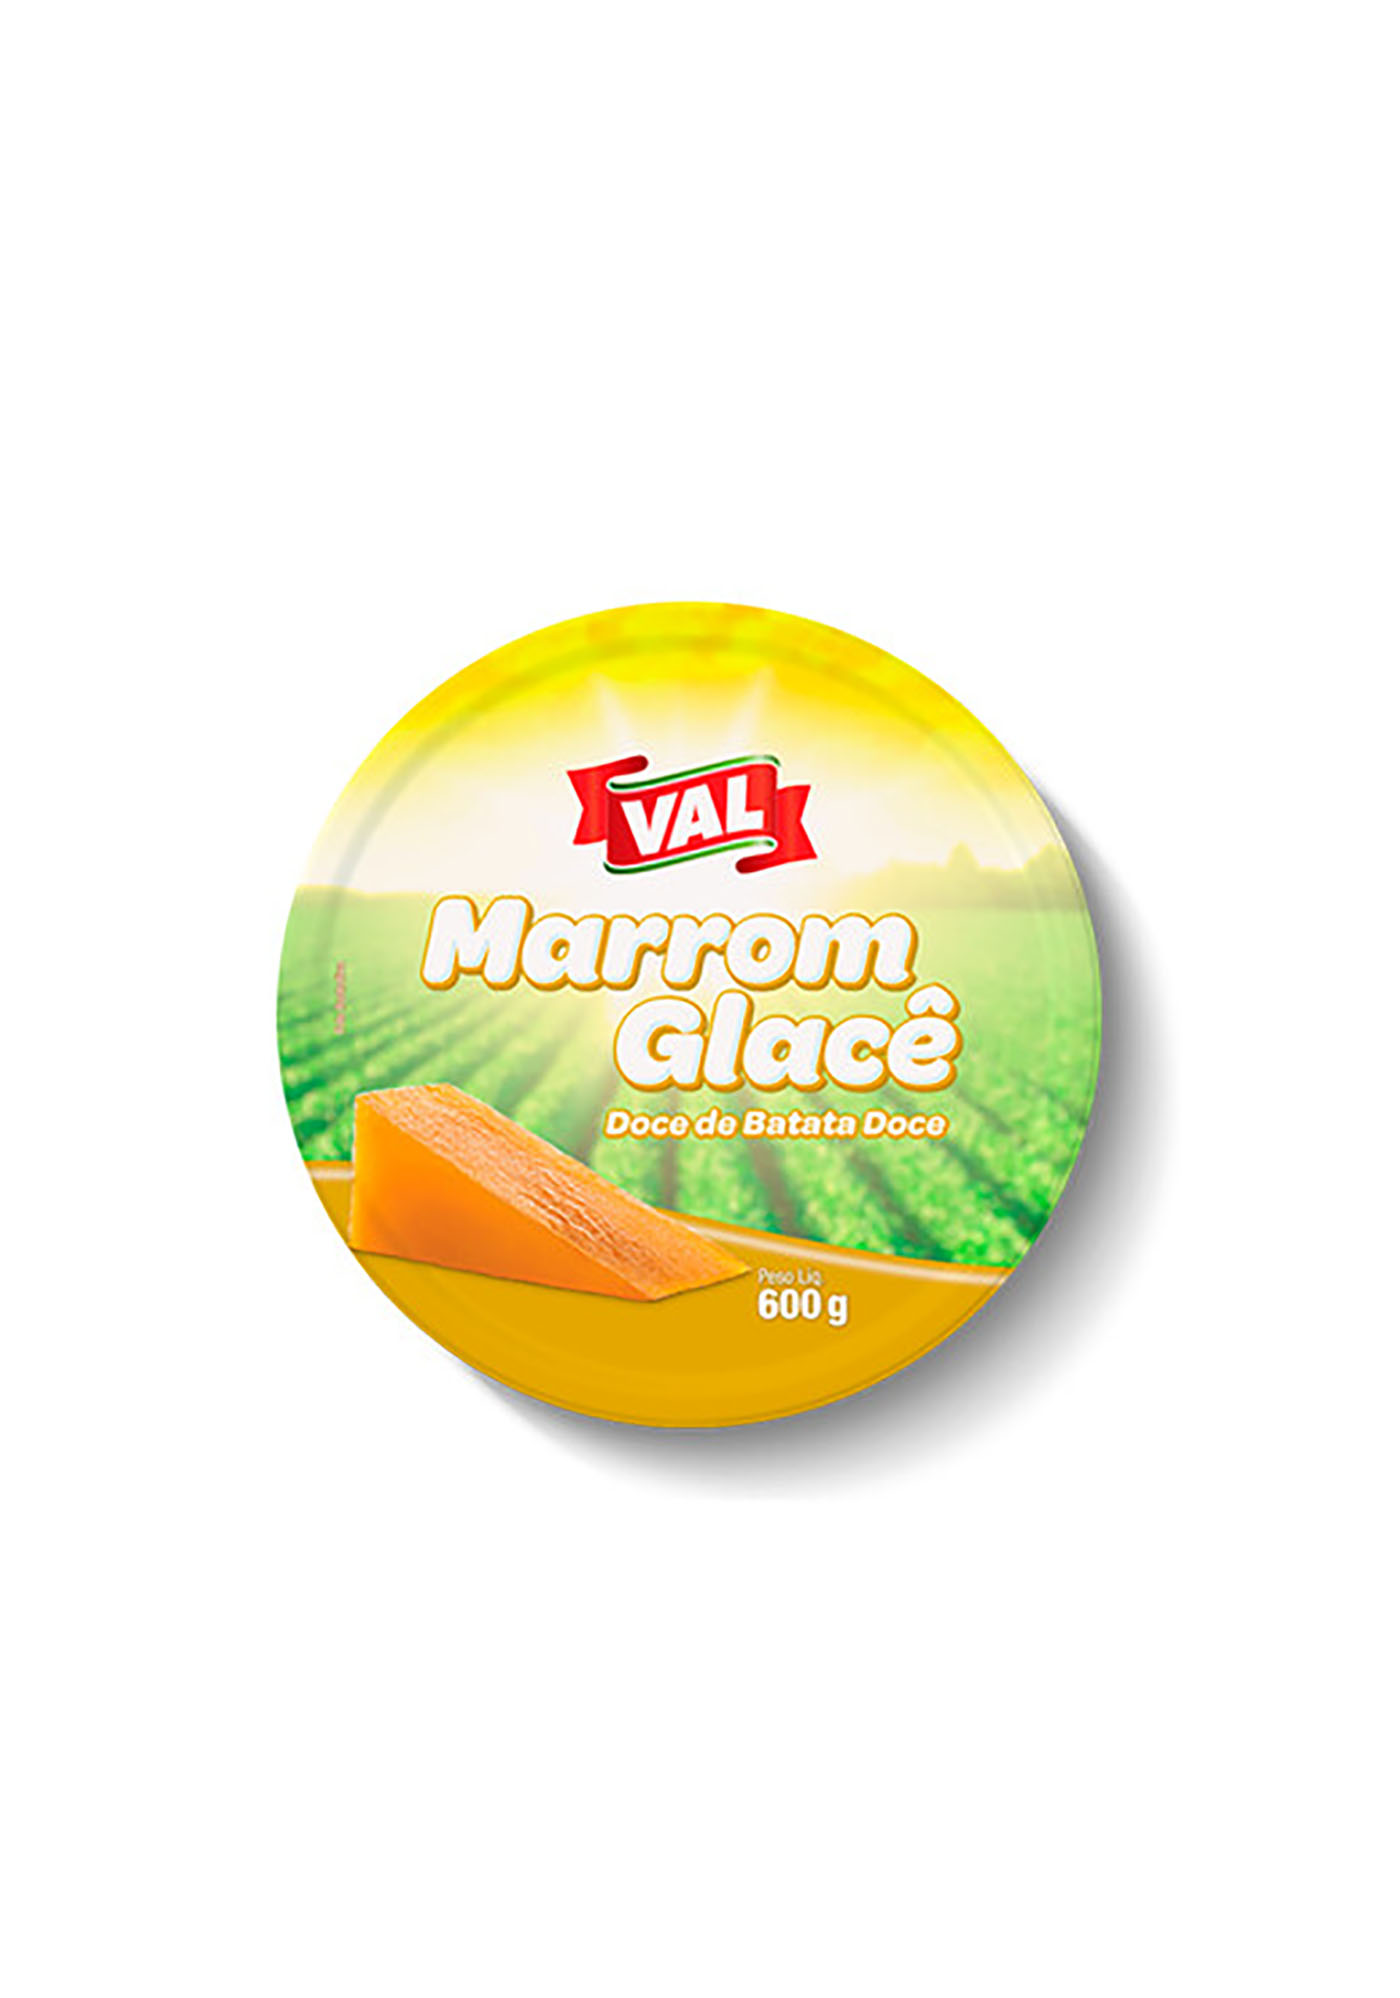 marrom glace val